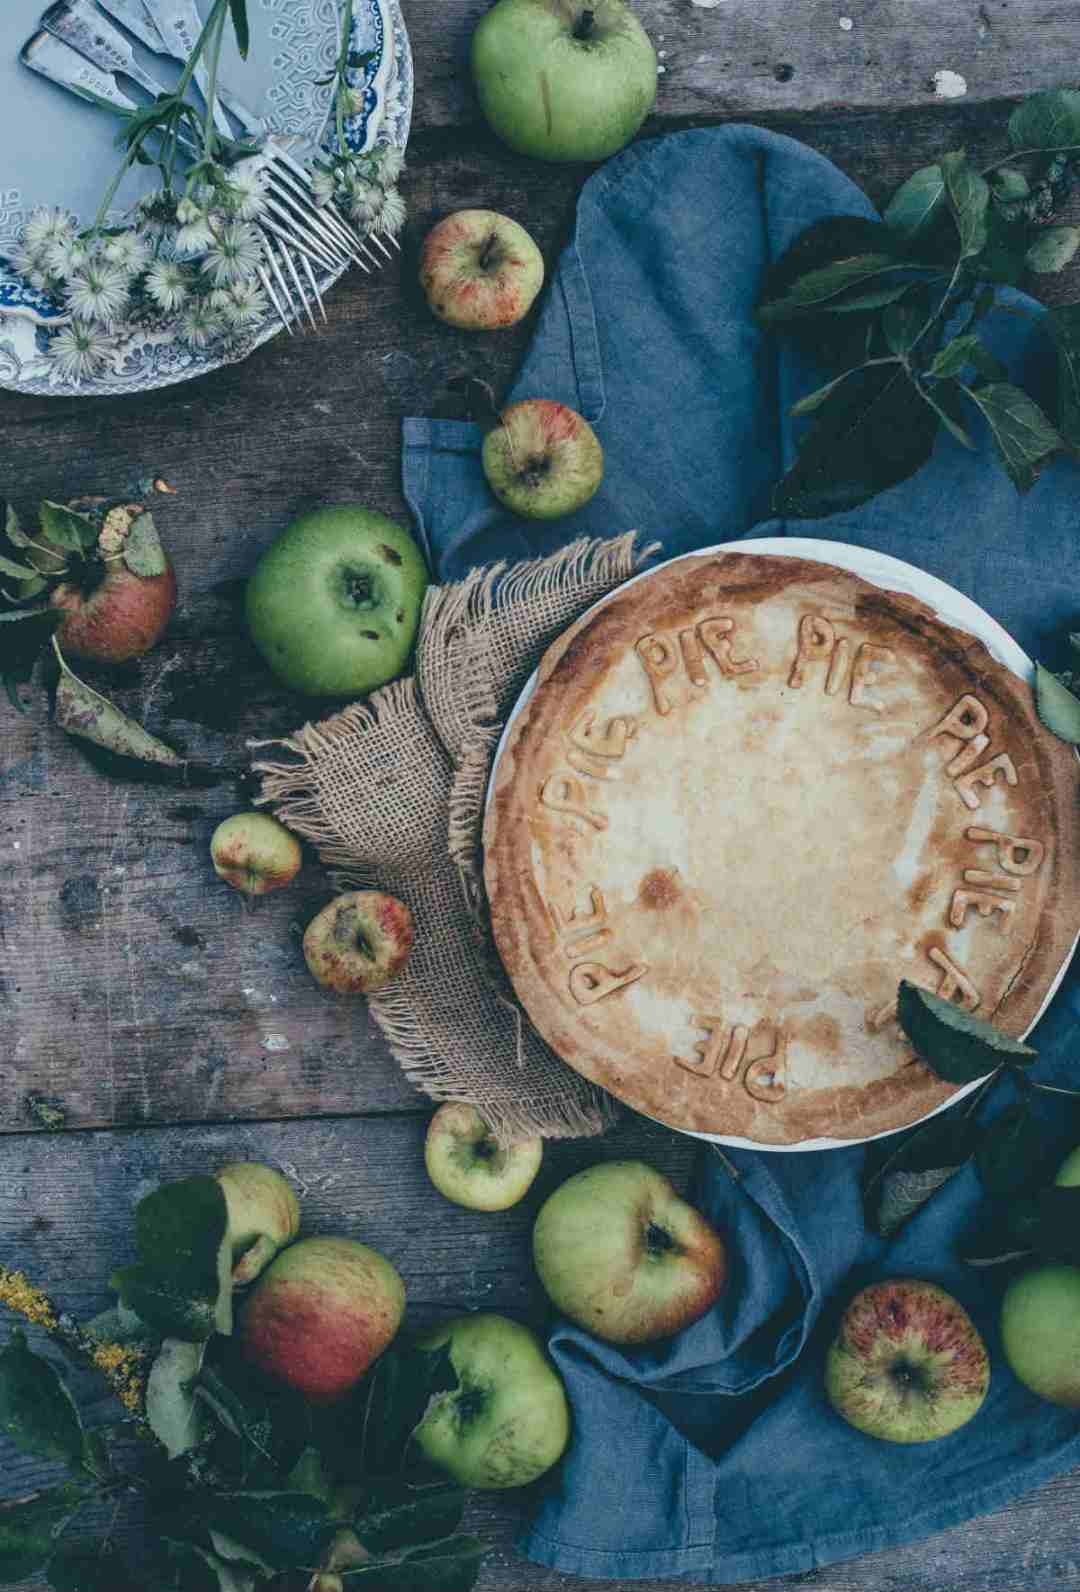 Subscribe to VeganEnvy - as easy as pie